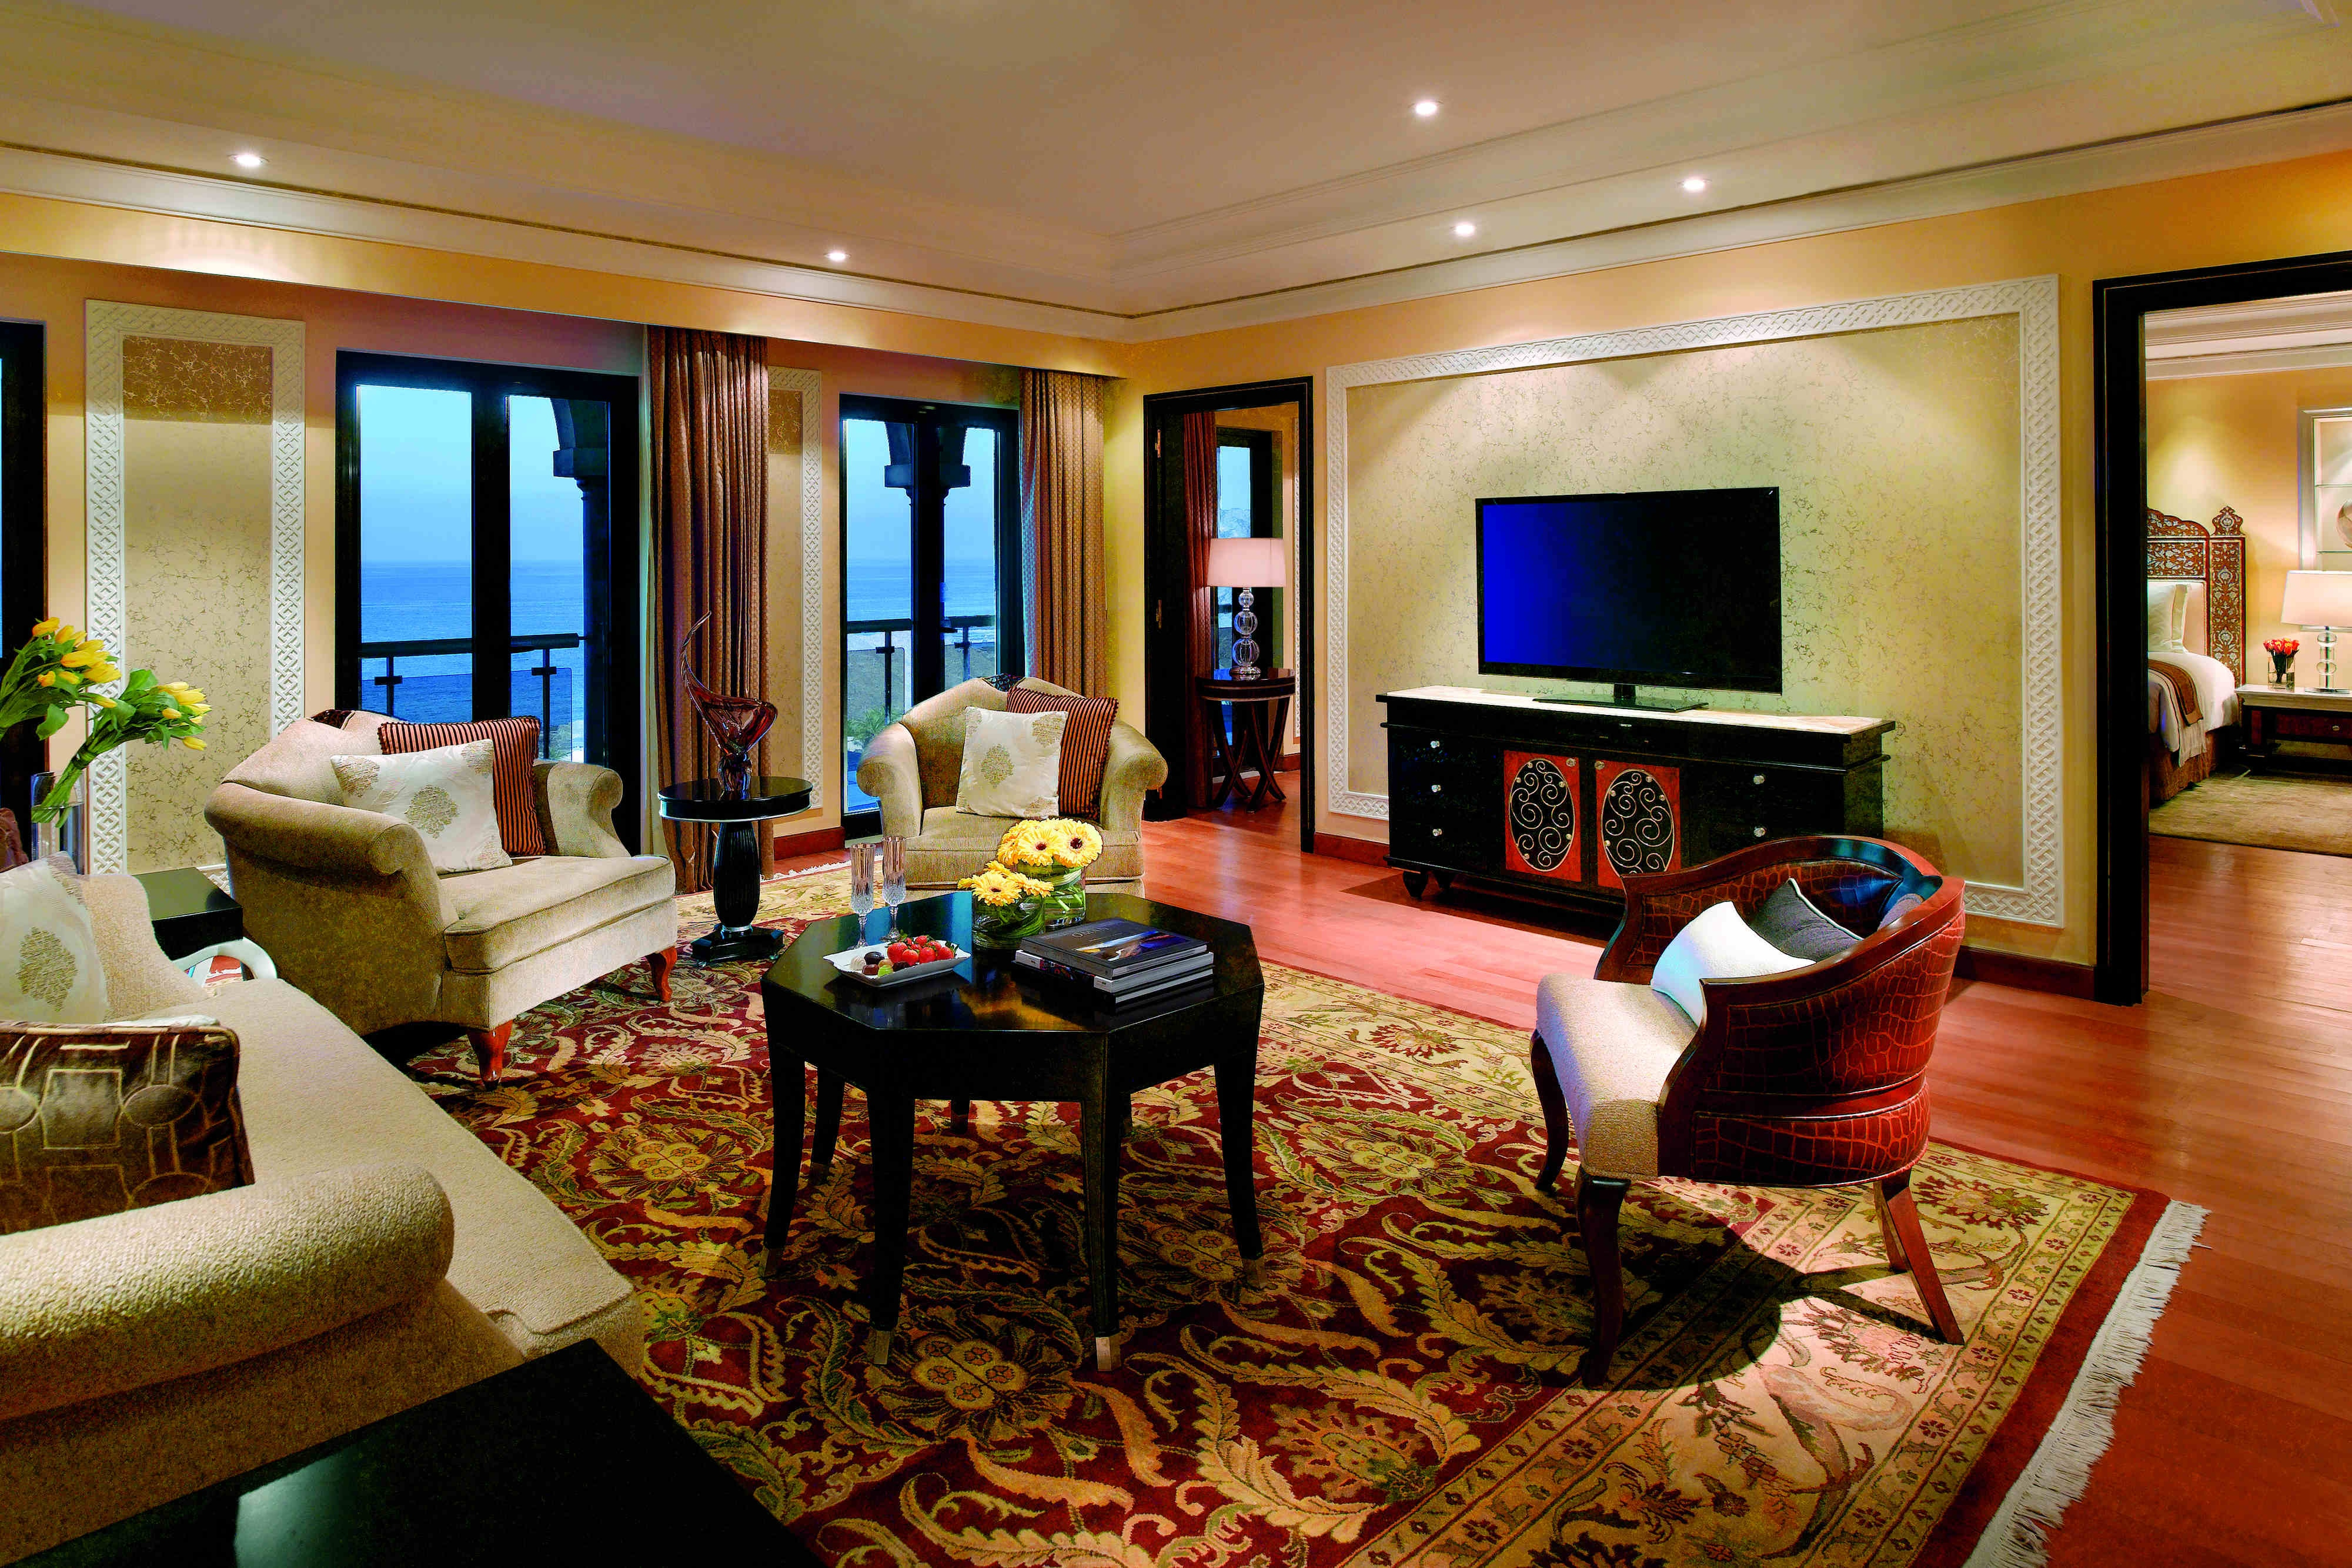 Al Bustan Palace, A Ritz-Carlton Hotel - Presidential Sea View Suite